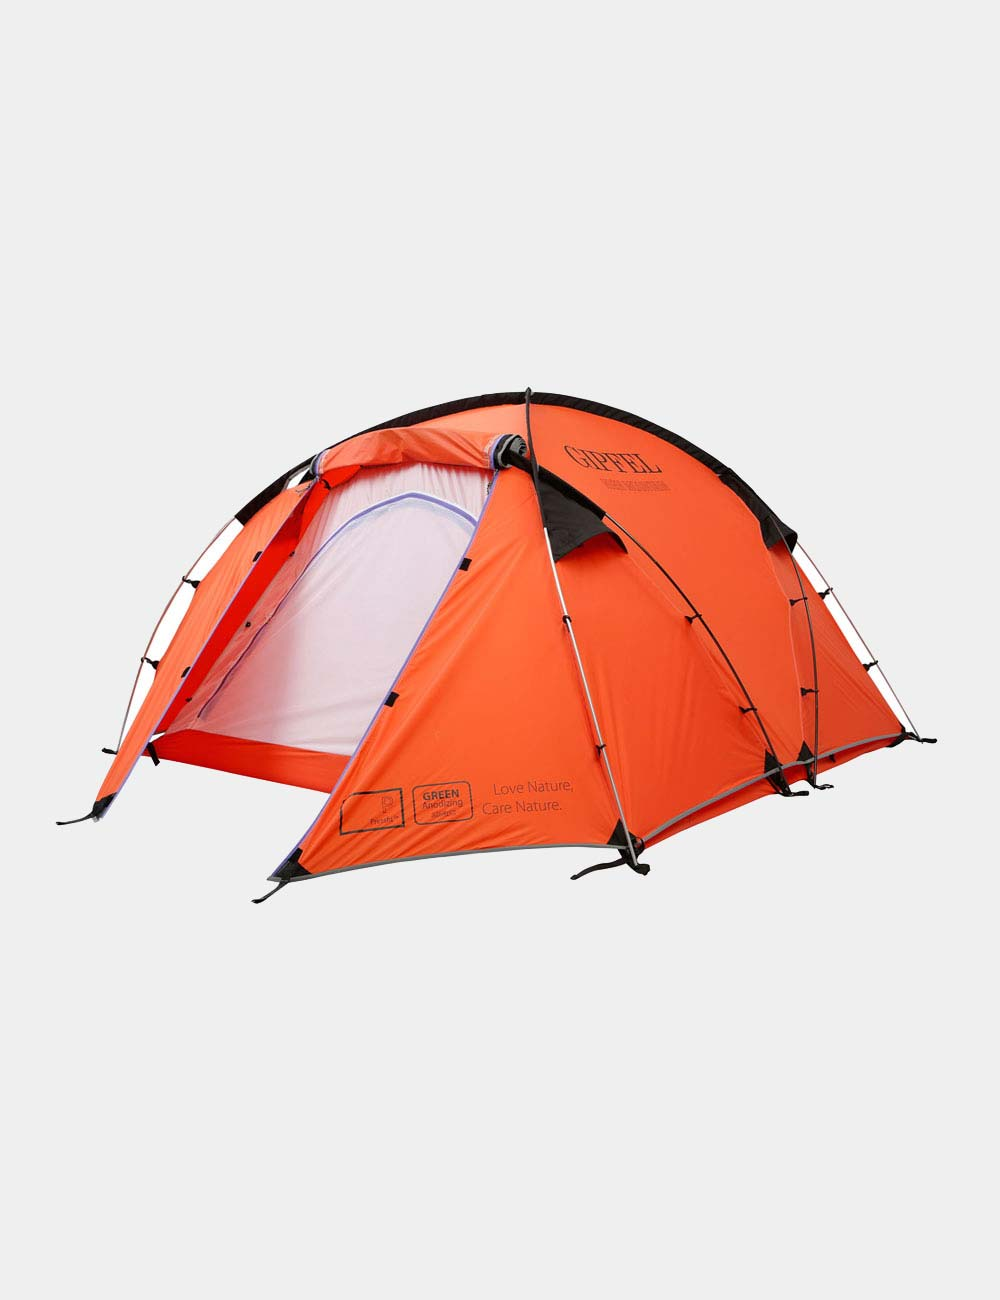 Buy Gipfel High Mountain 4 Tent Tent In India Gipfel Climbing Equipment